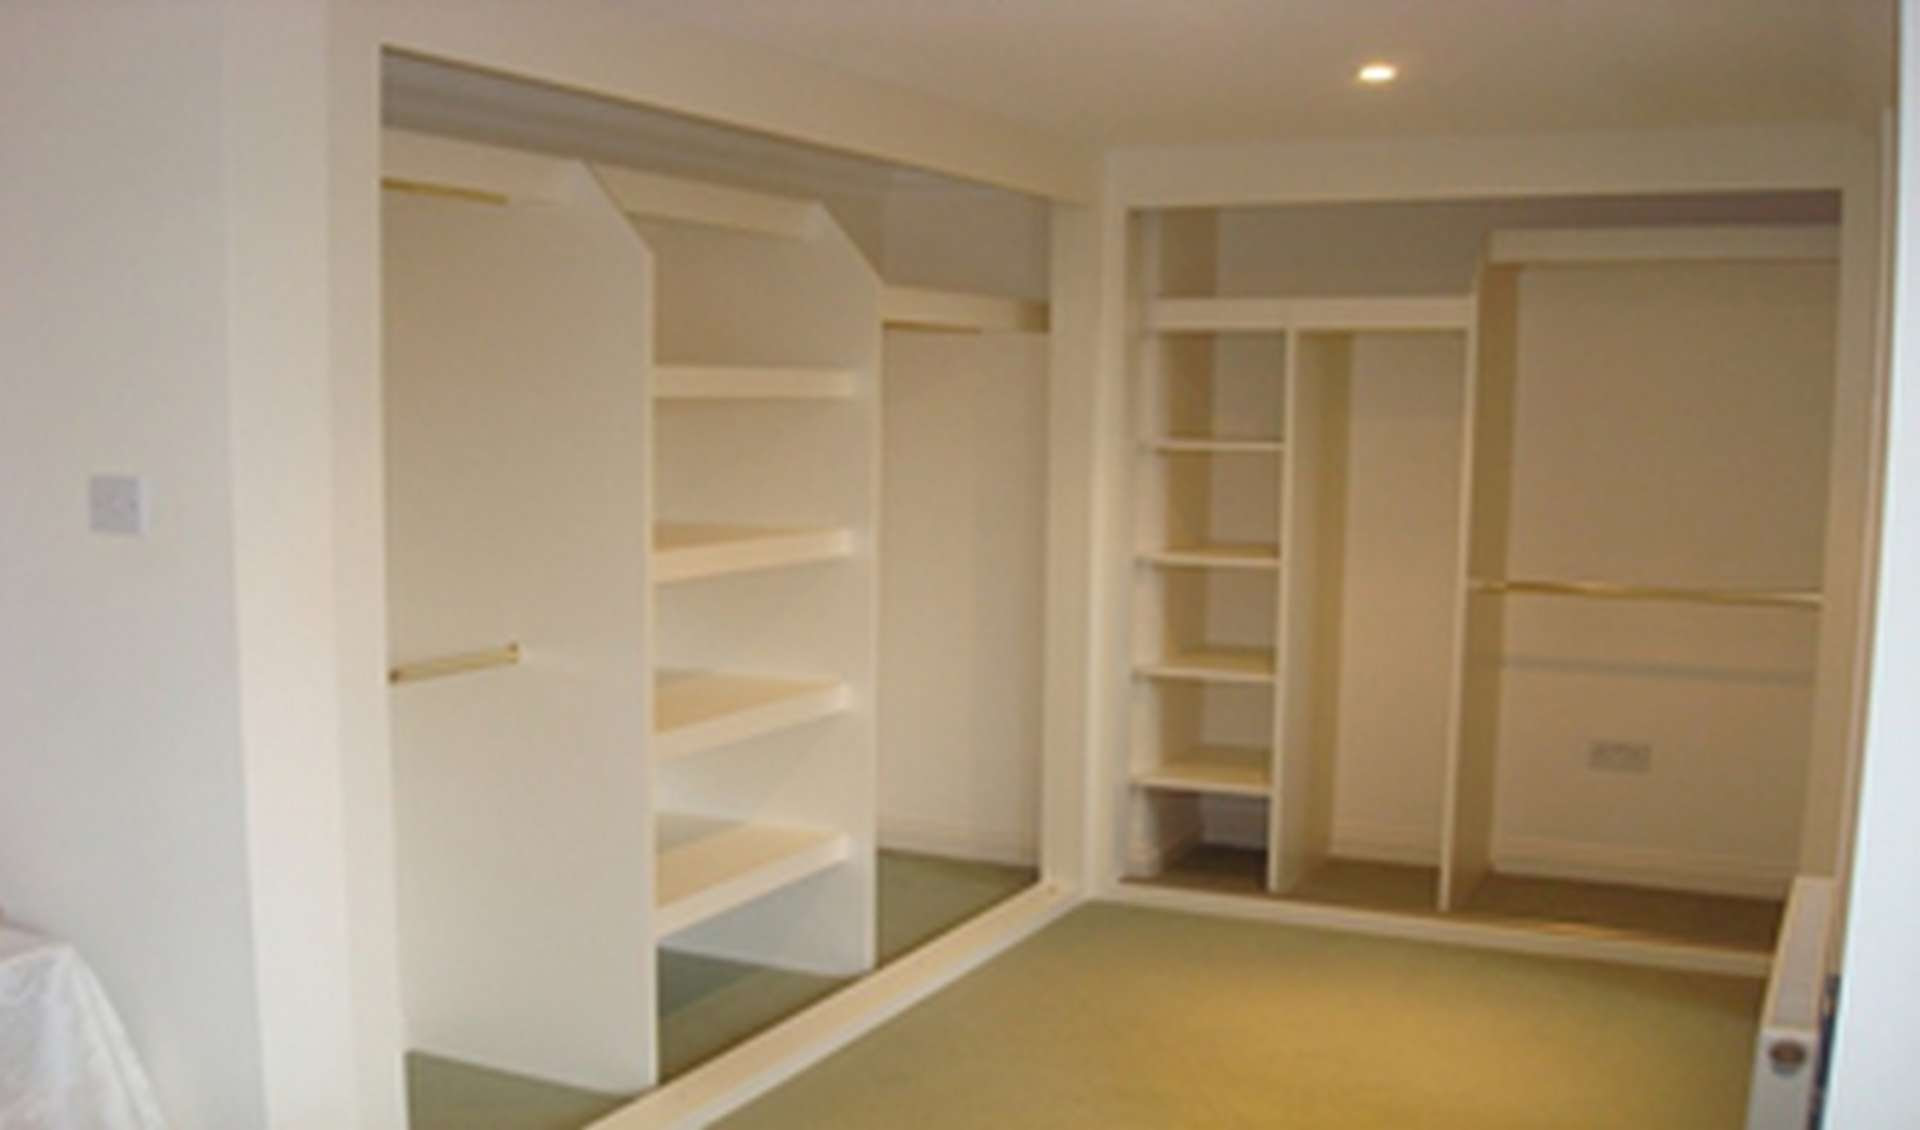 Fitted storage solutions | Fitted bedroom storage ideas ...